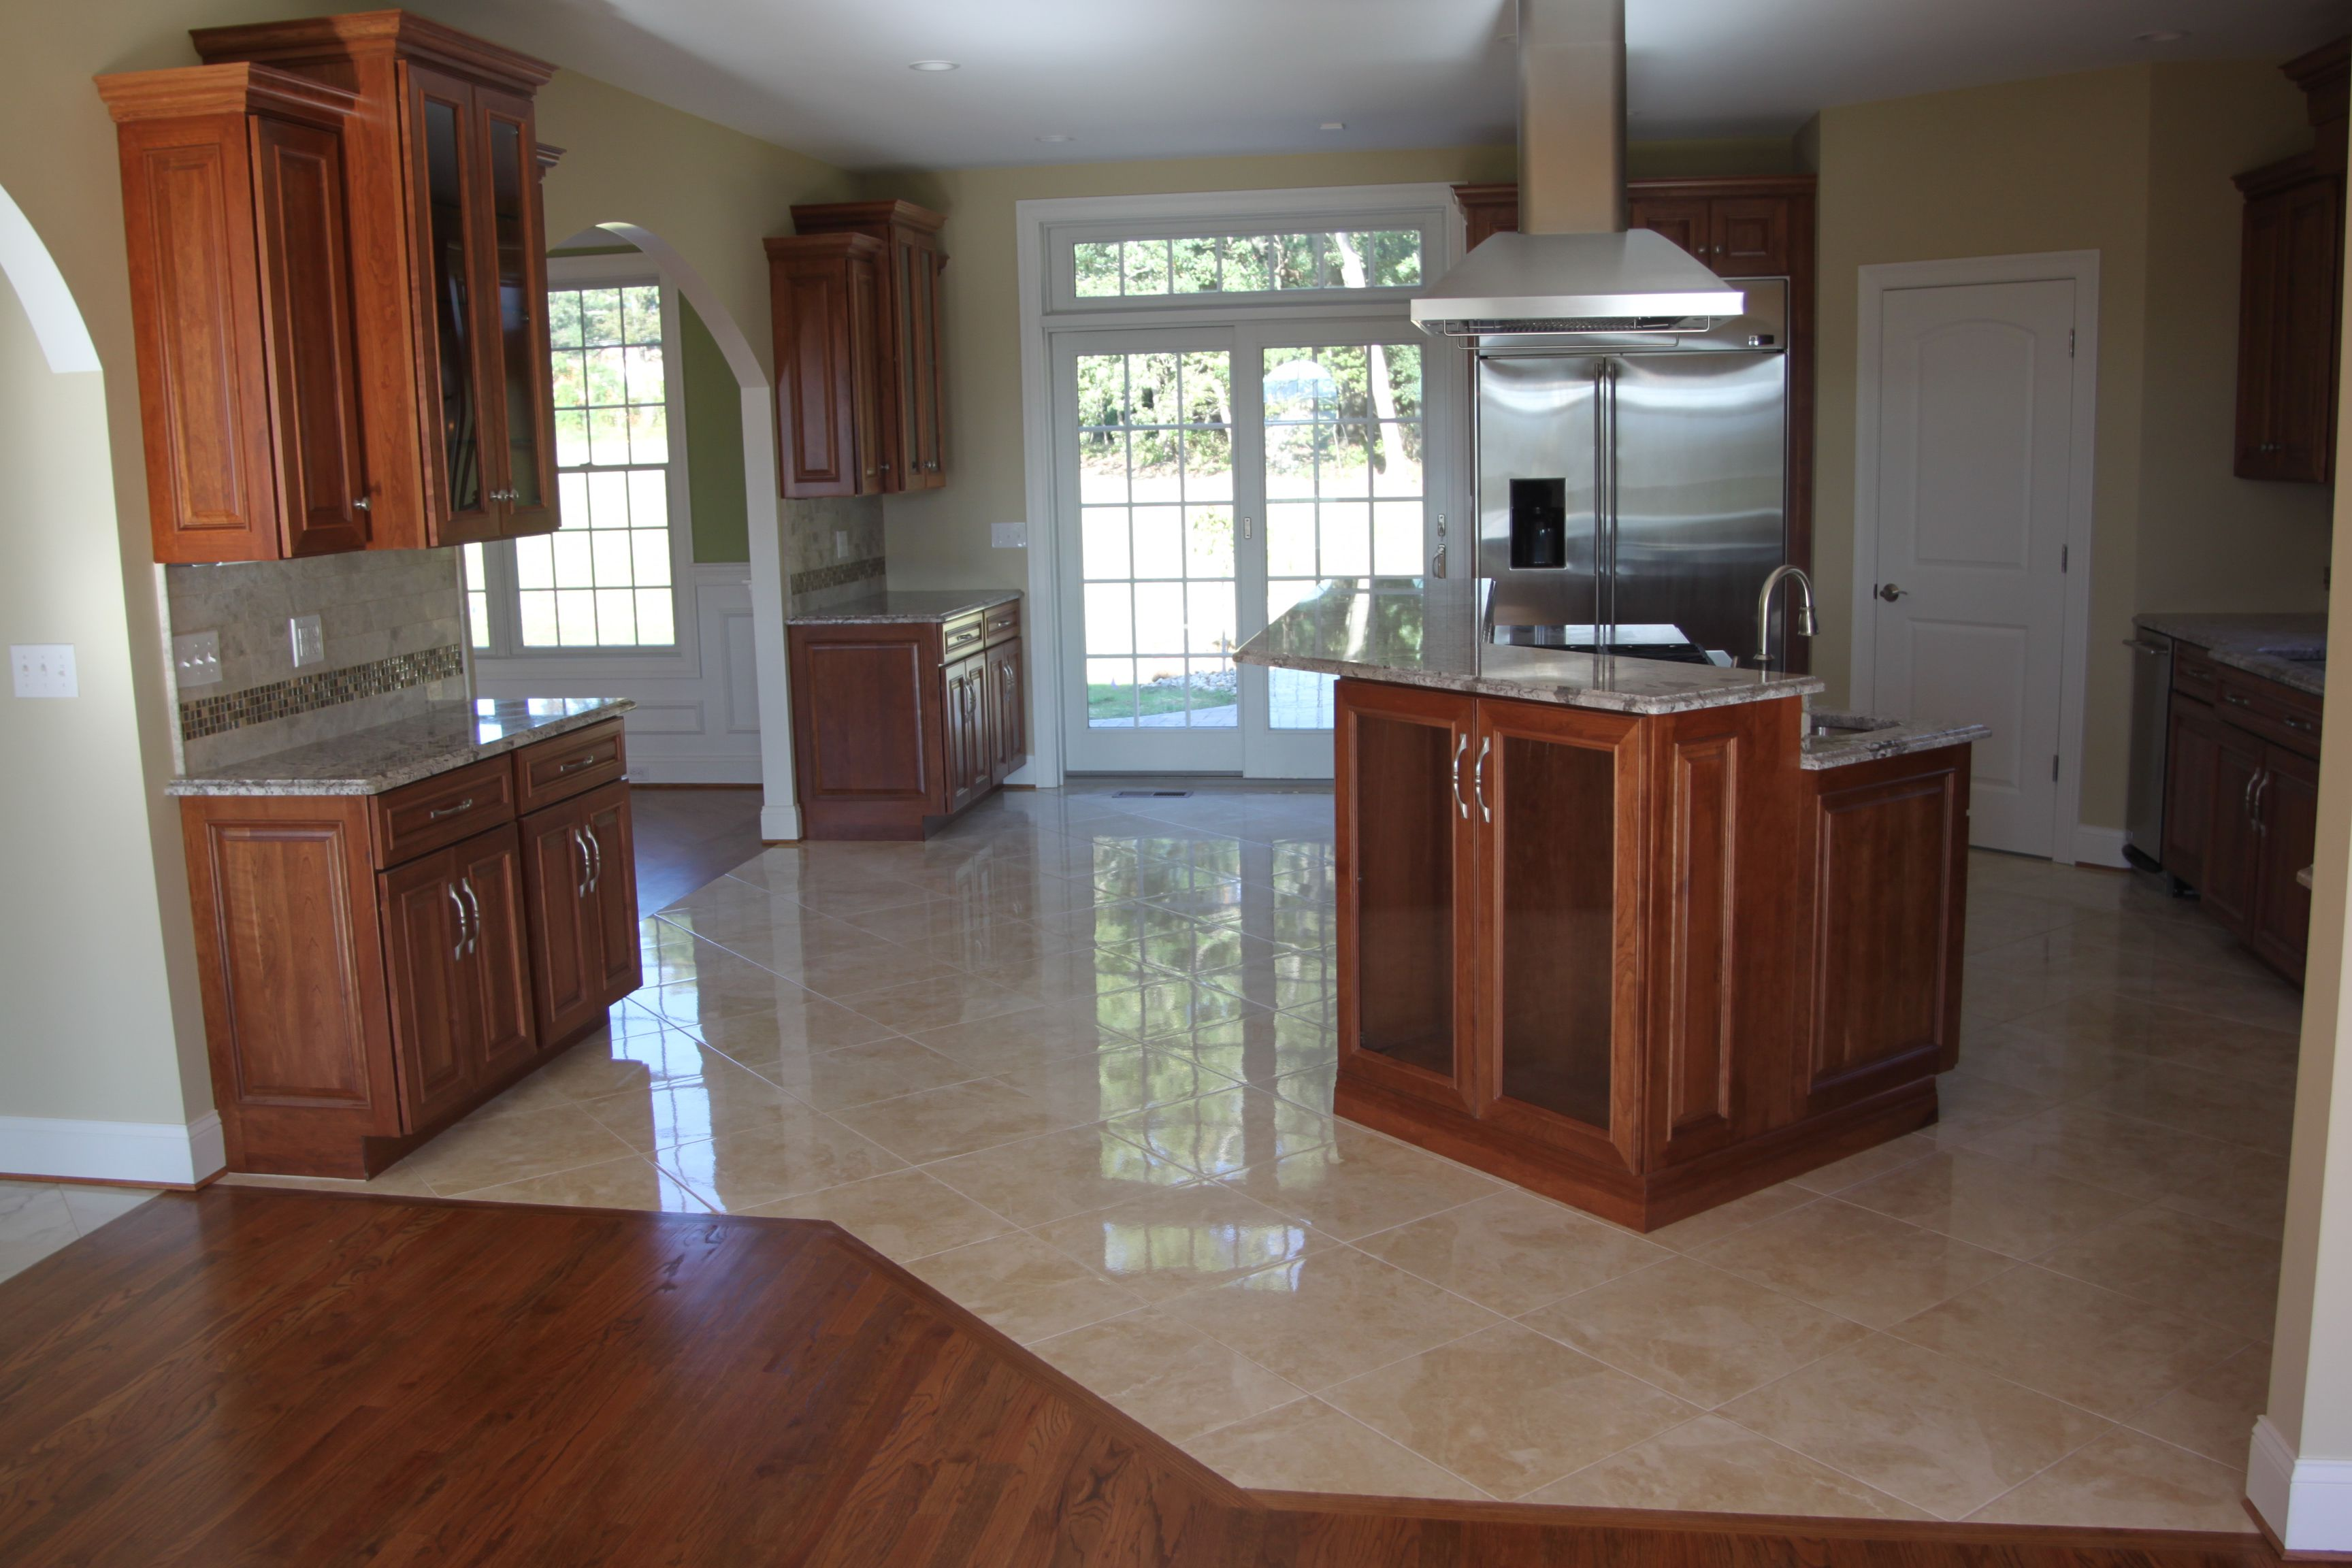 Floor tile designs ideas to enhance your floor appearance midcityeast Kitchen design of tiles